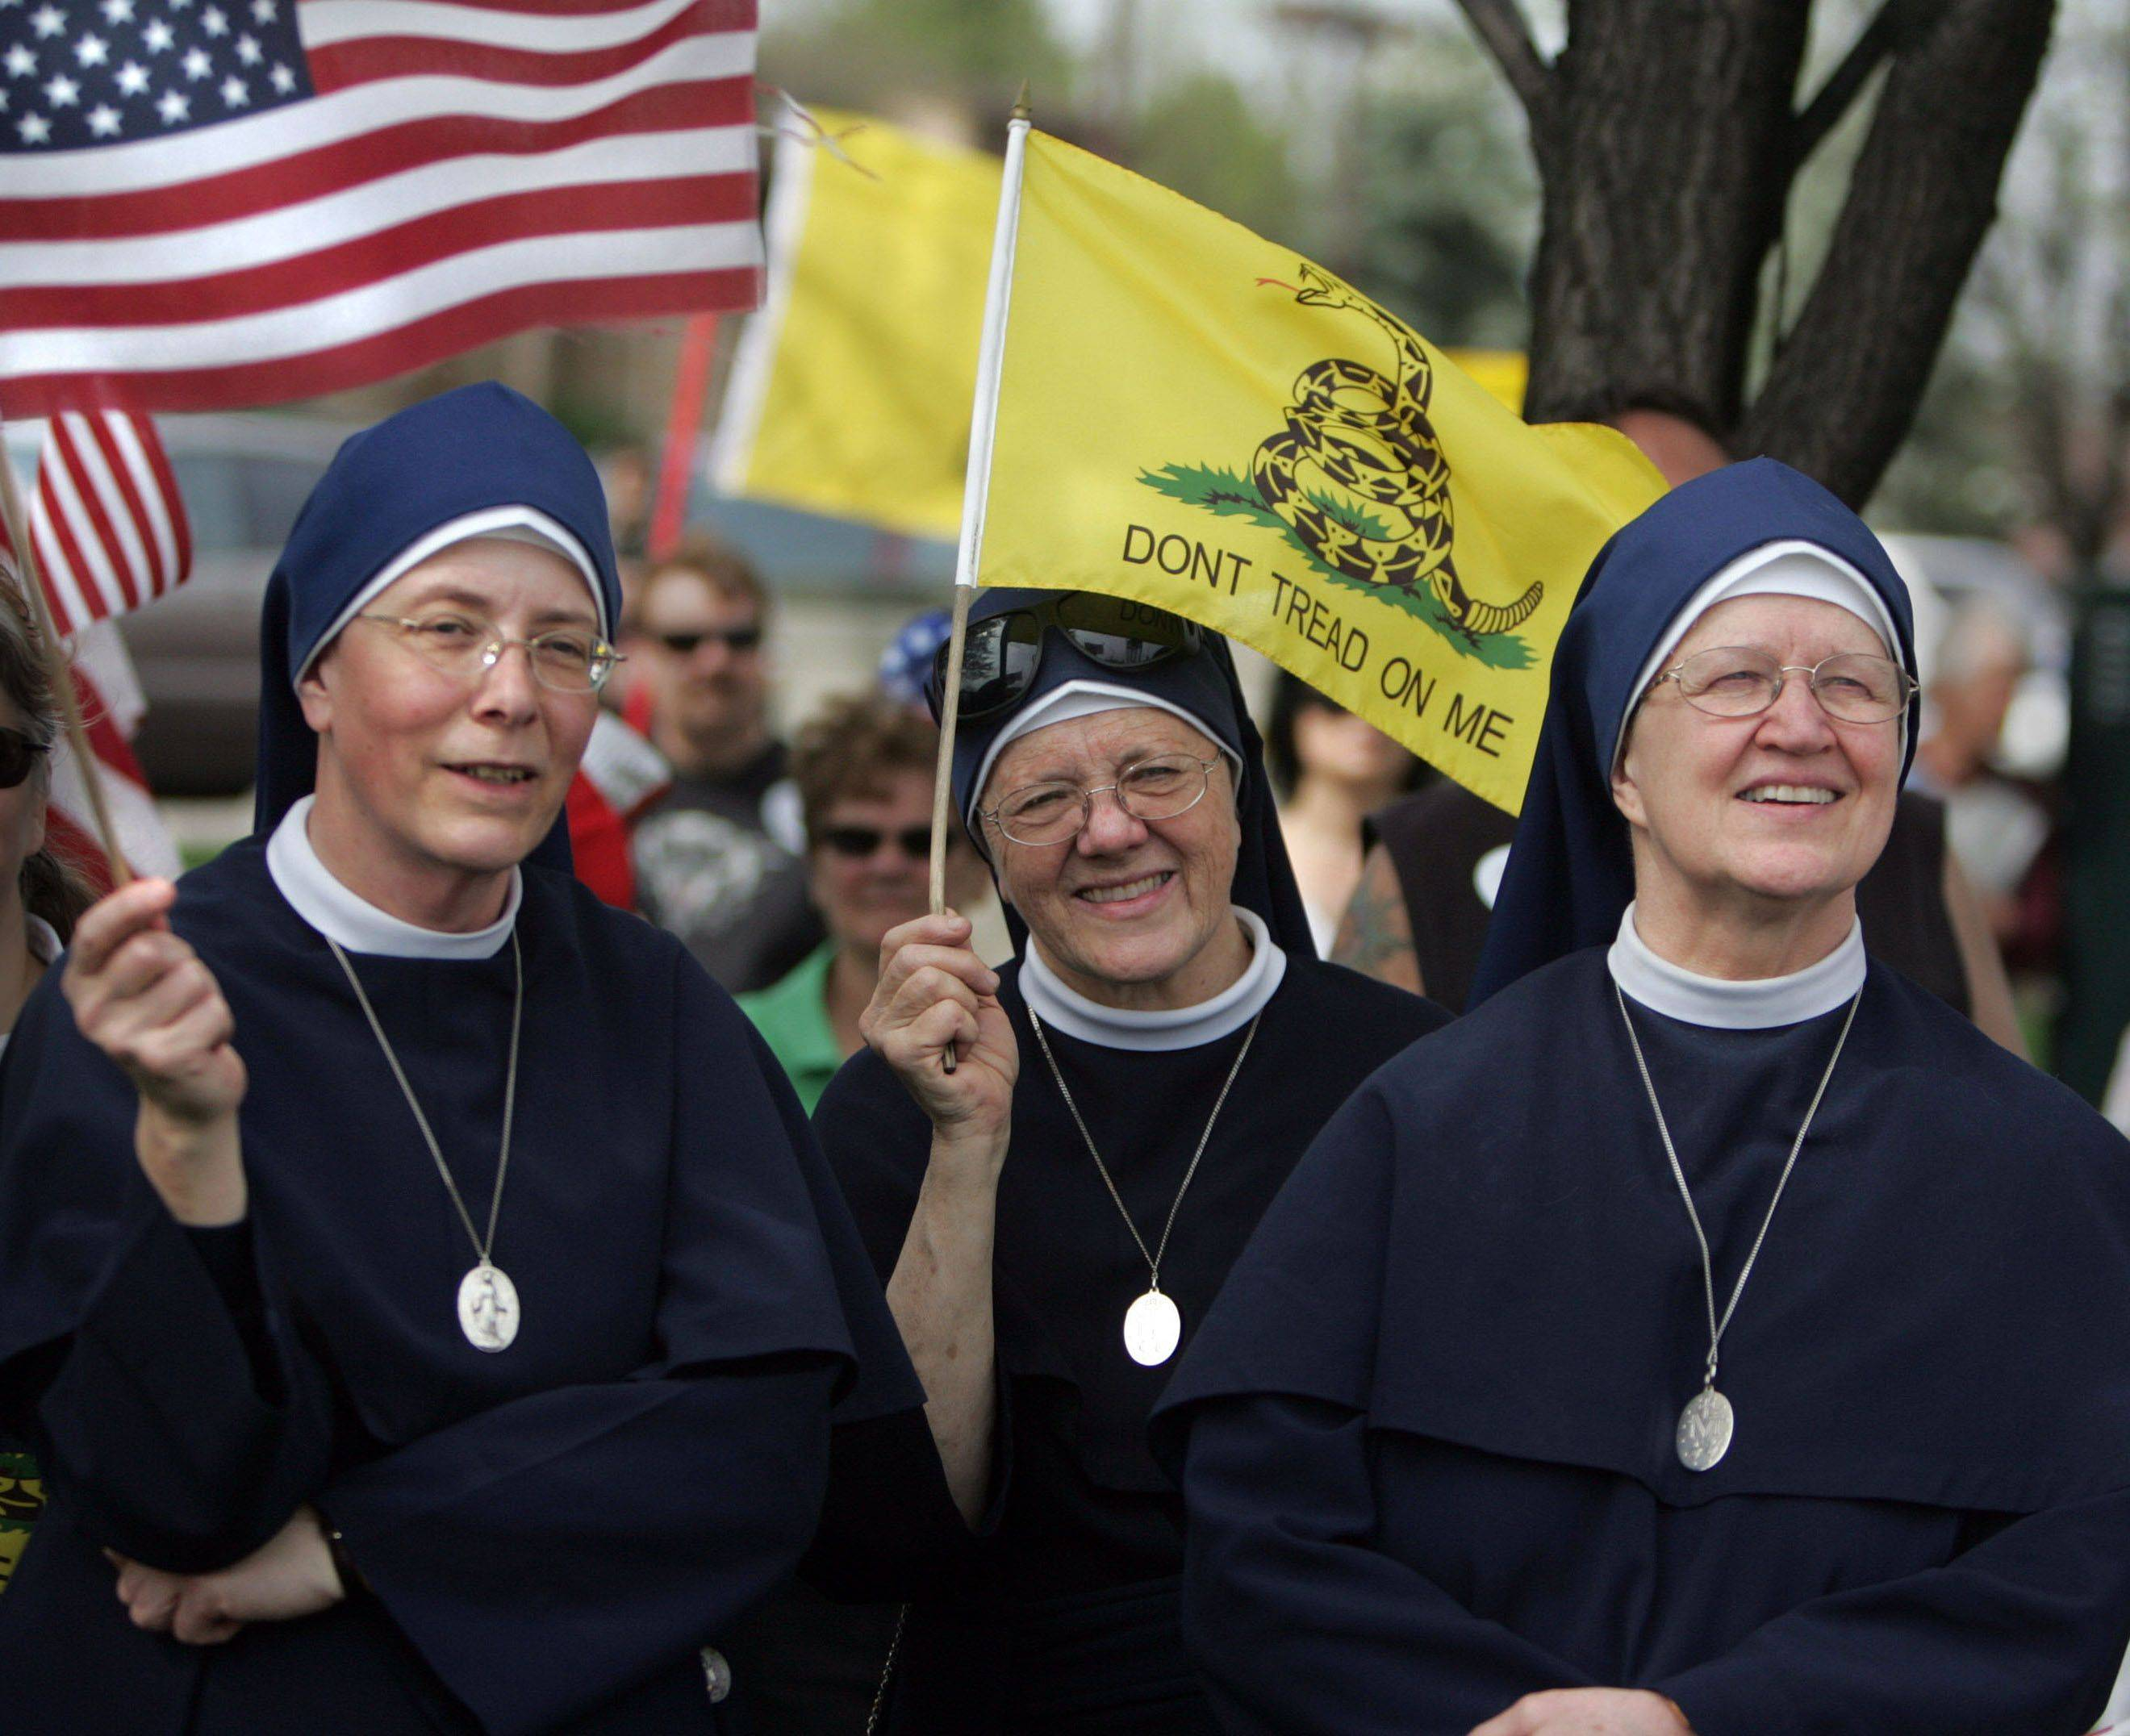 Sister Rose Bernadette, left to right, sister John Marie, and Mother Mary Patrick cheer on speakers at the Tea Party's Taxed Enough Already rally at Volunteer Plaza.